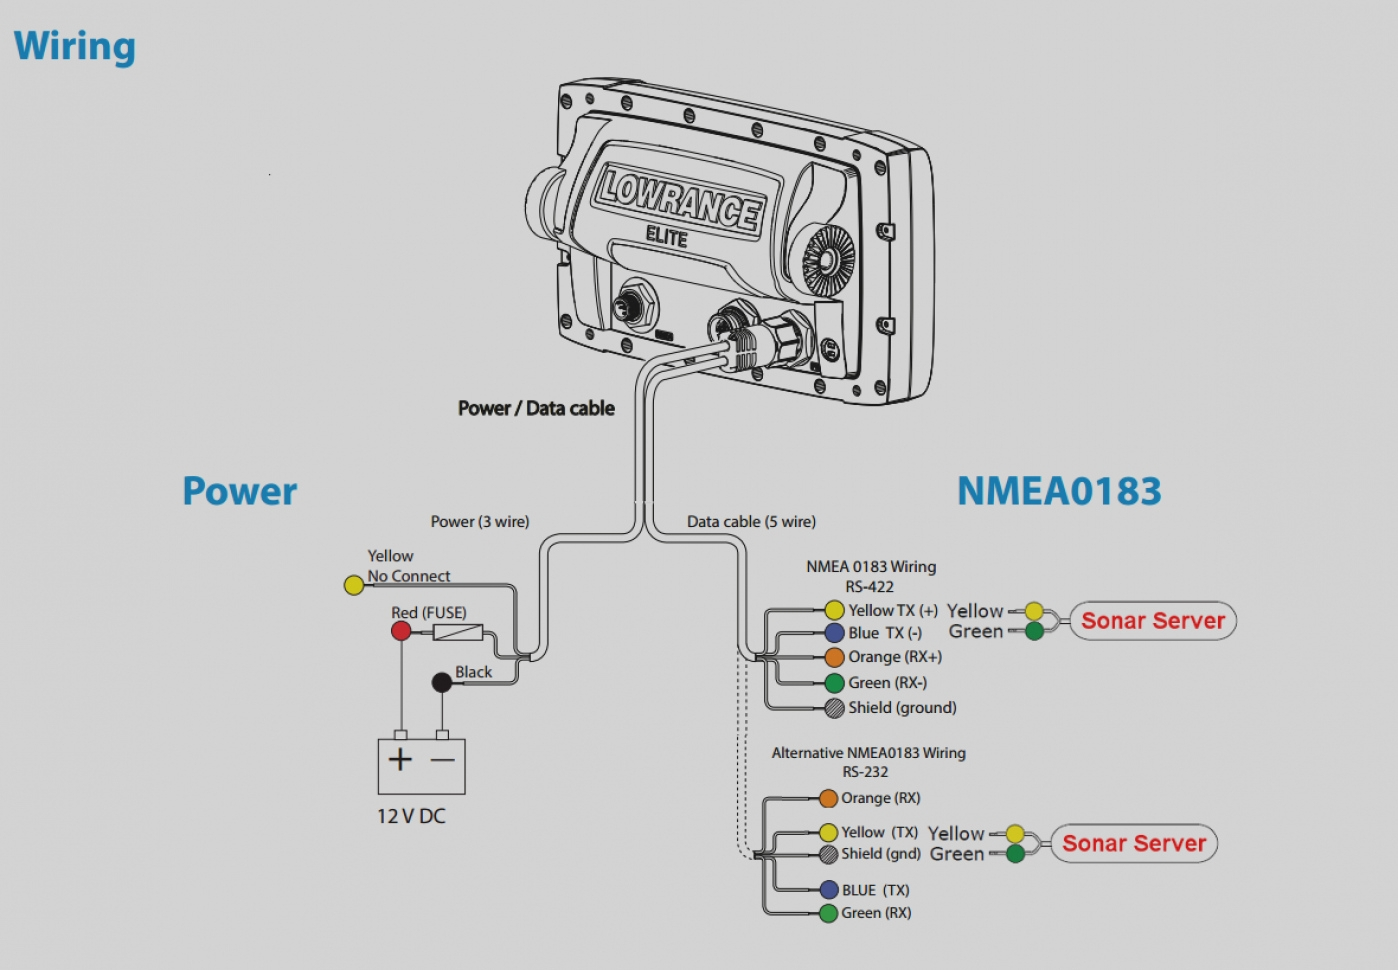 Nmea 0183 Cable Wiring Diagram Furuno Lowrance Schematic Power Libraries X135 For You